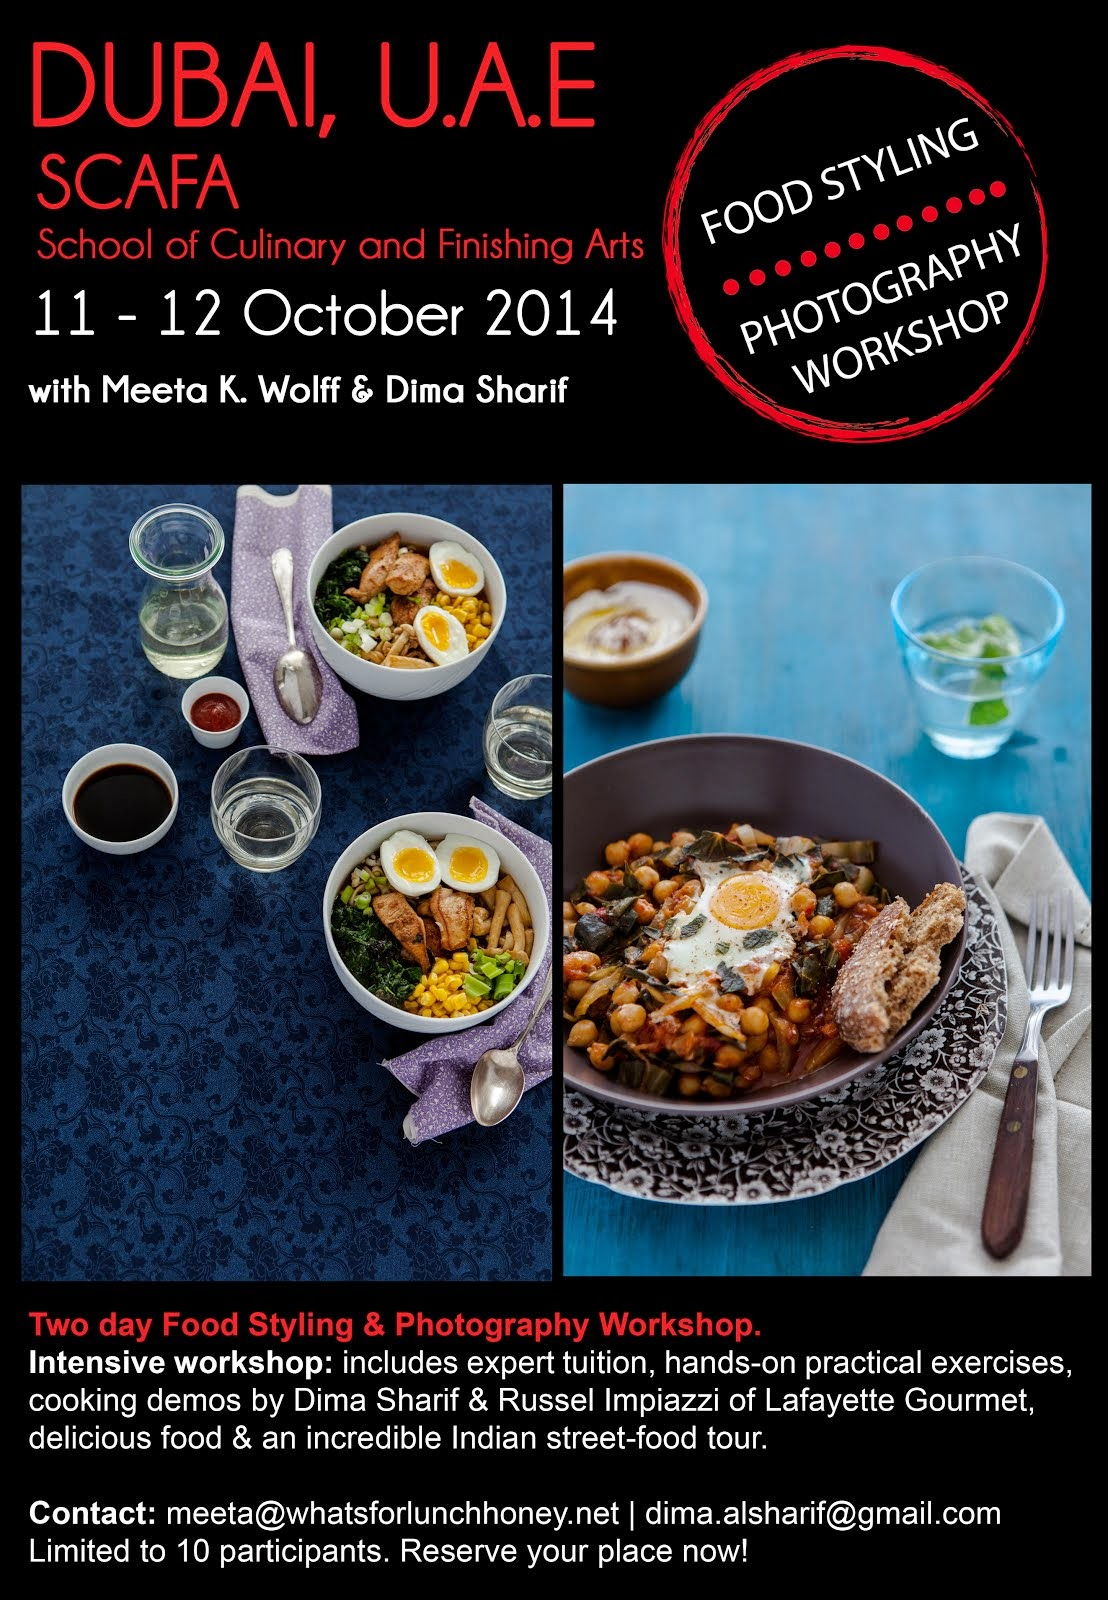 Food Styling & Photography Workshop 2014 - Dubai